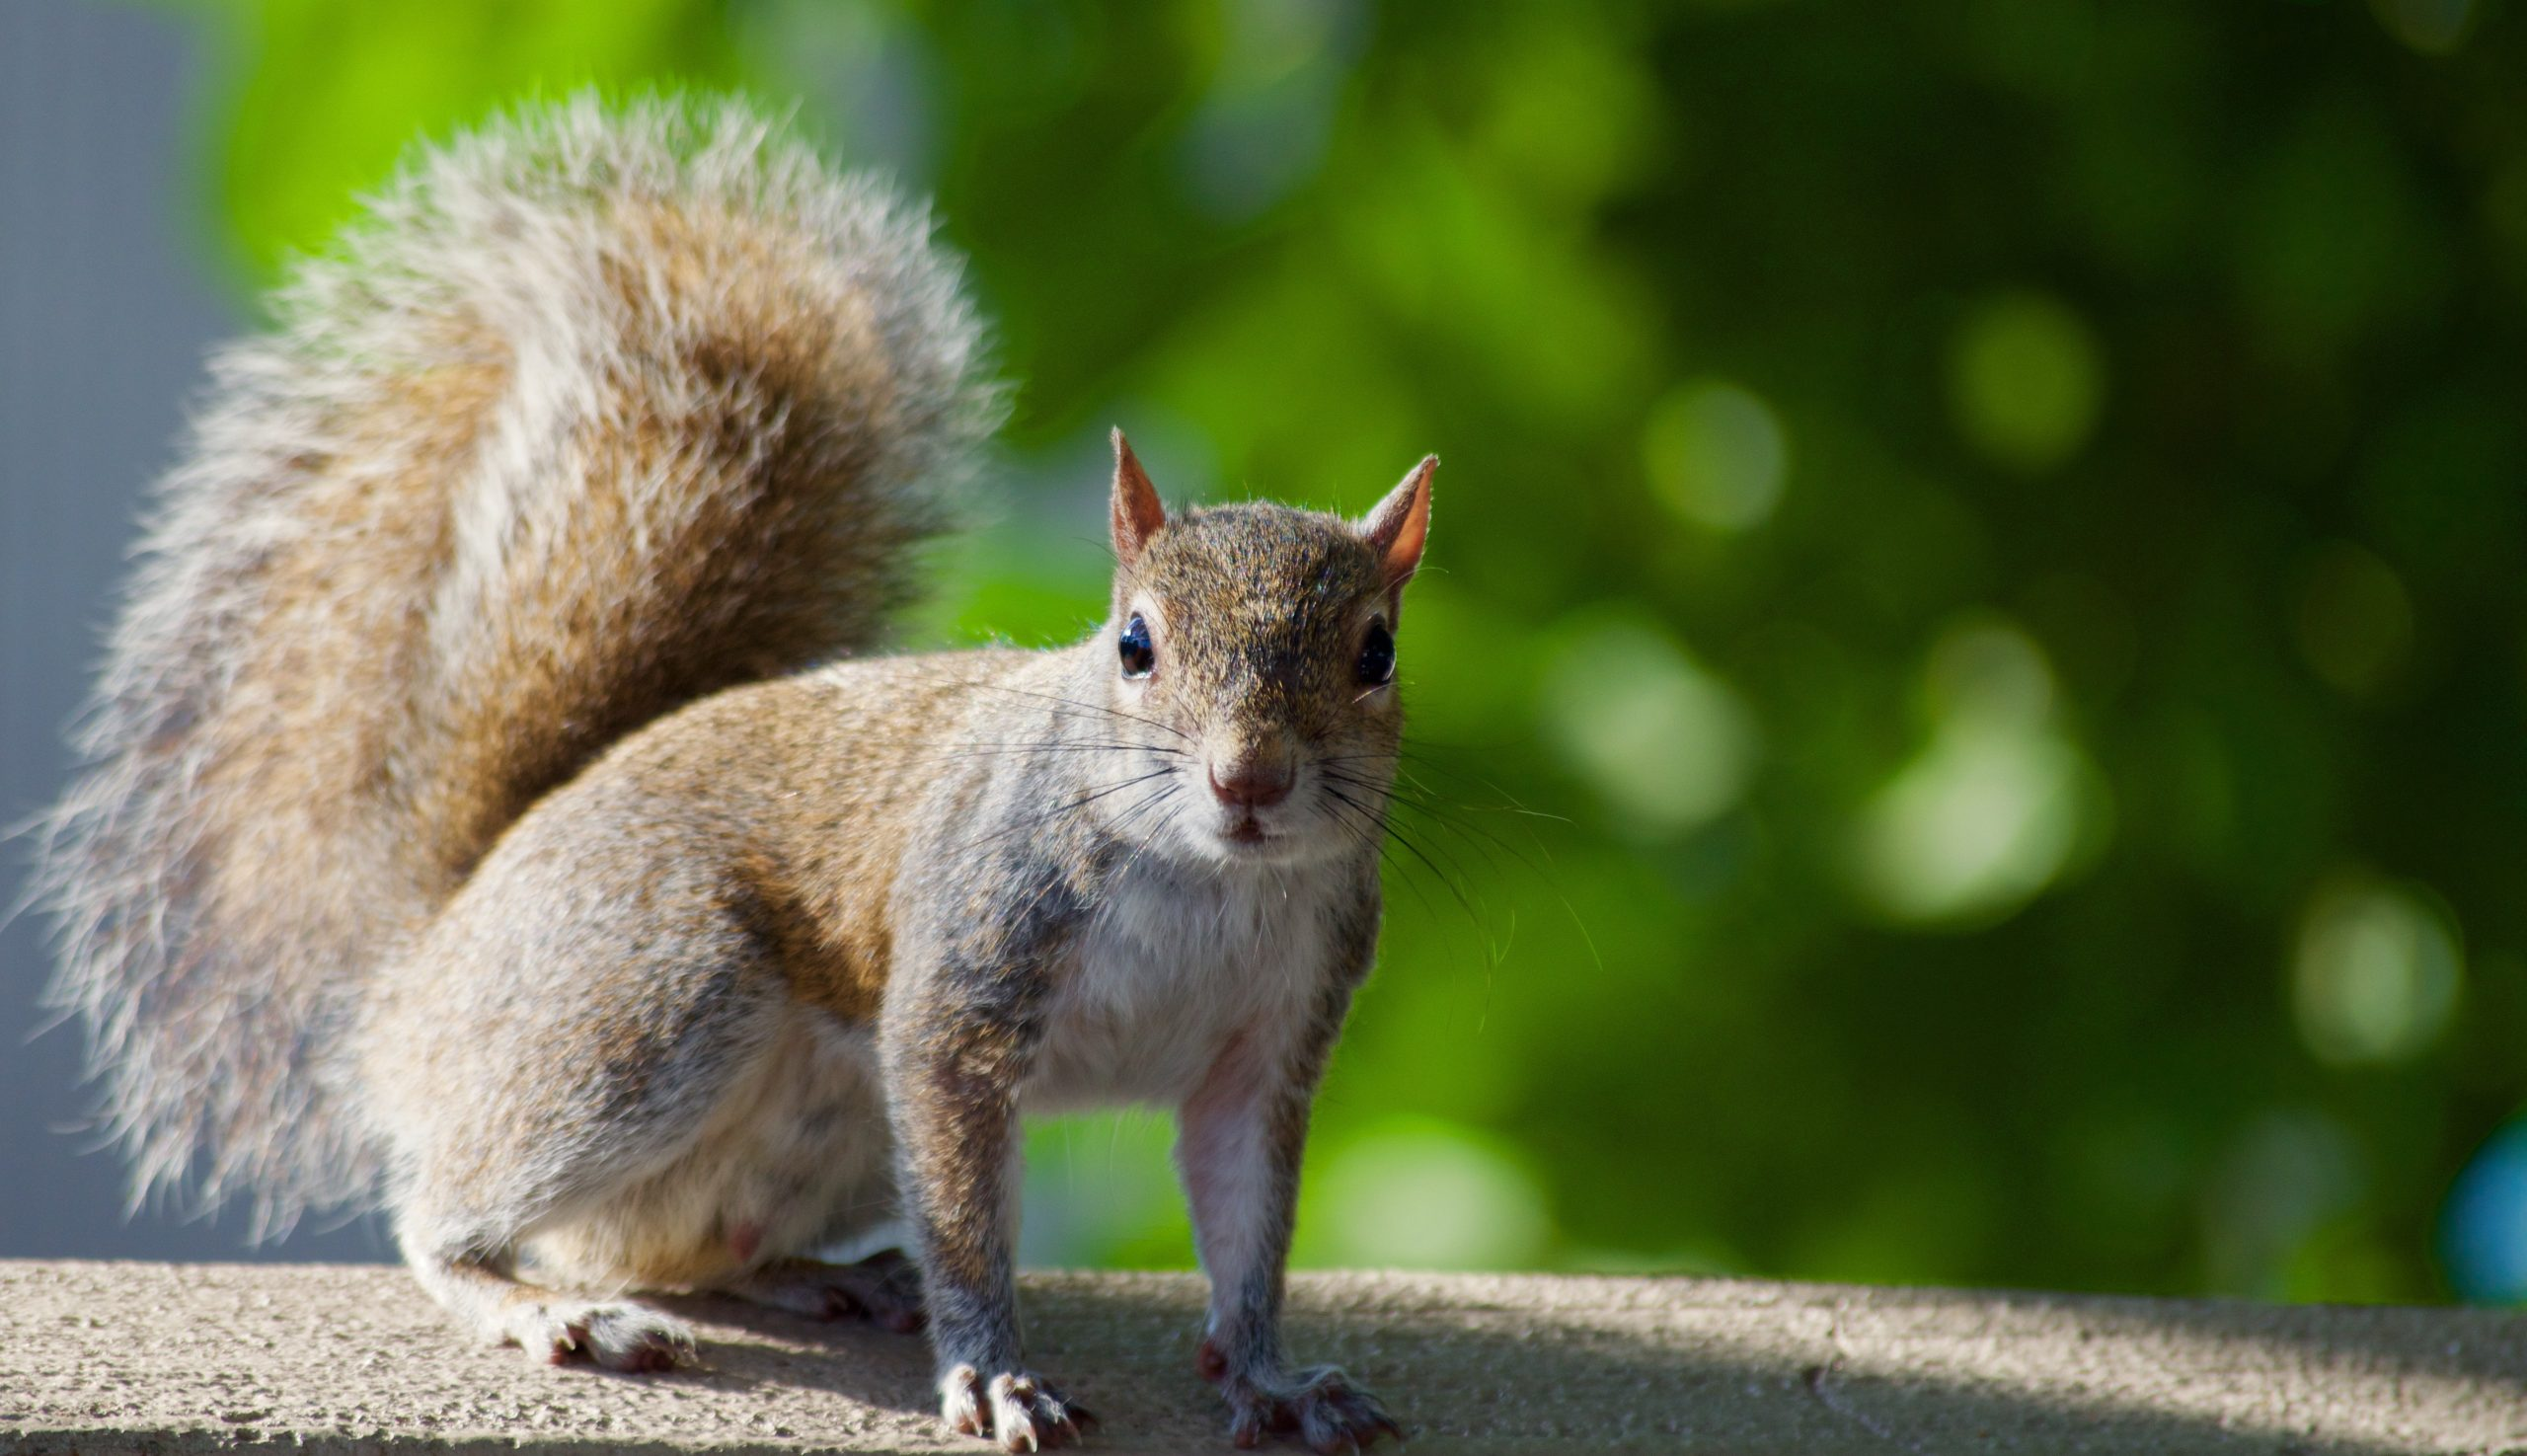 Squirrels in London are Using Plastic Waste to Build Nests